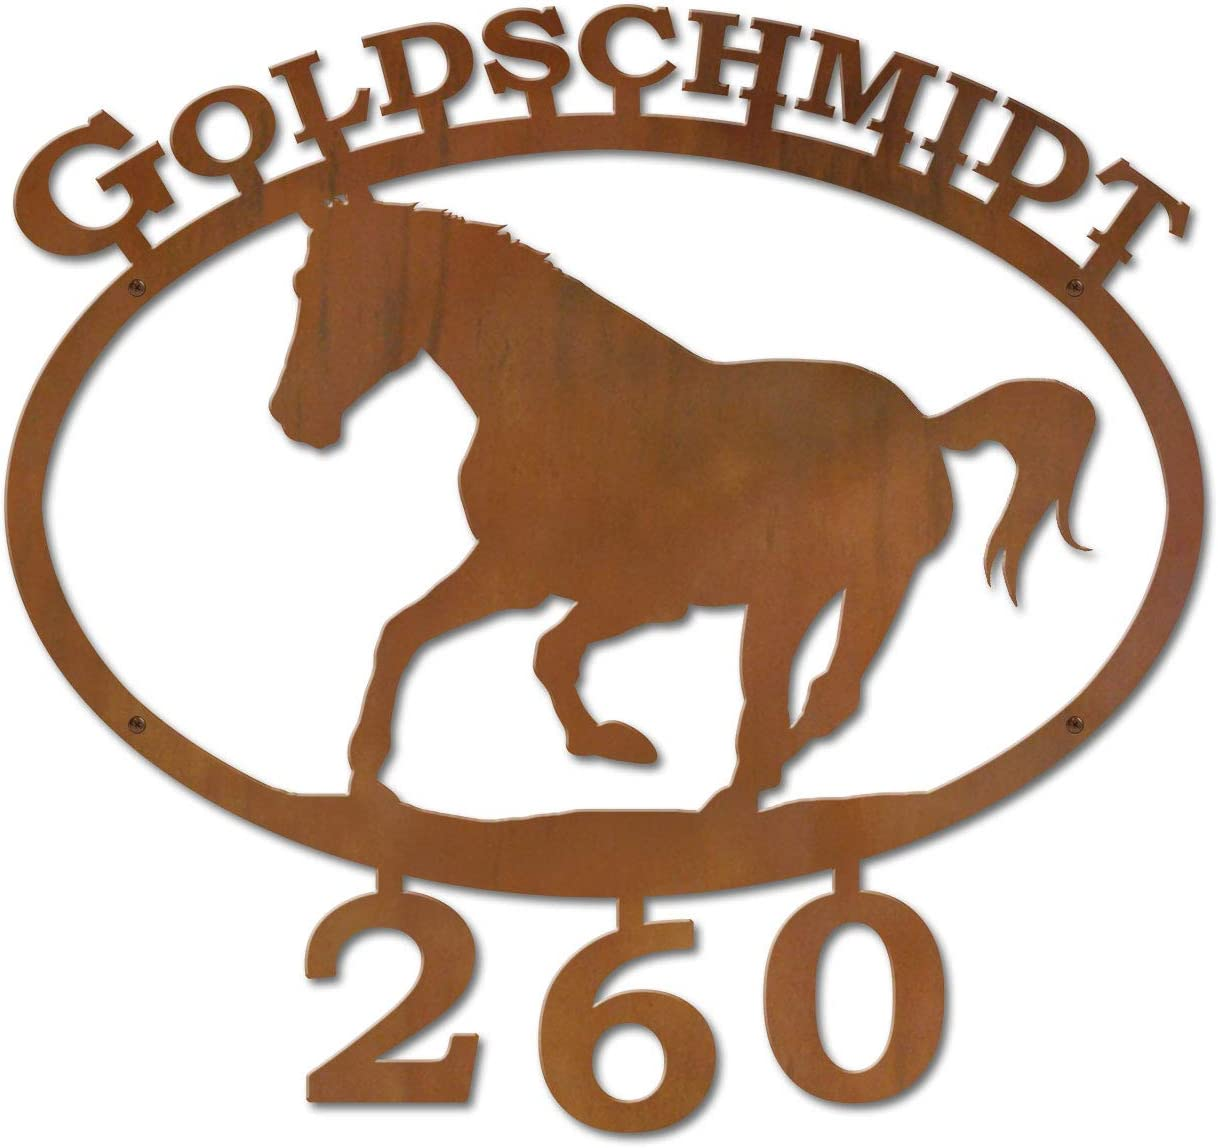 Rust Metal Finish Cold Nose Creations 22in Oval Steel Address Name and Numbers Sign Western Decor Running Horse Made in USA